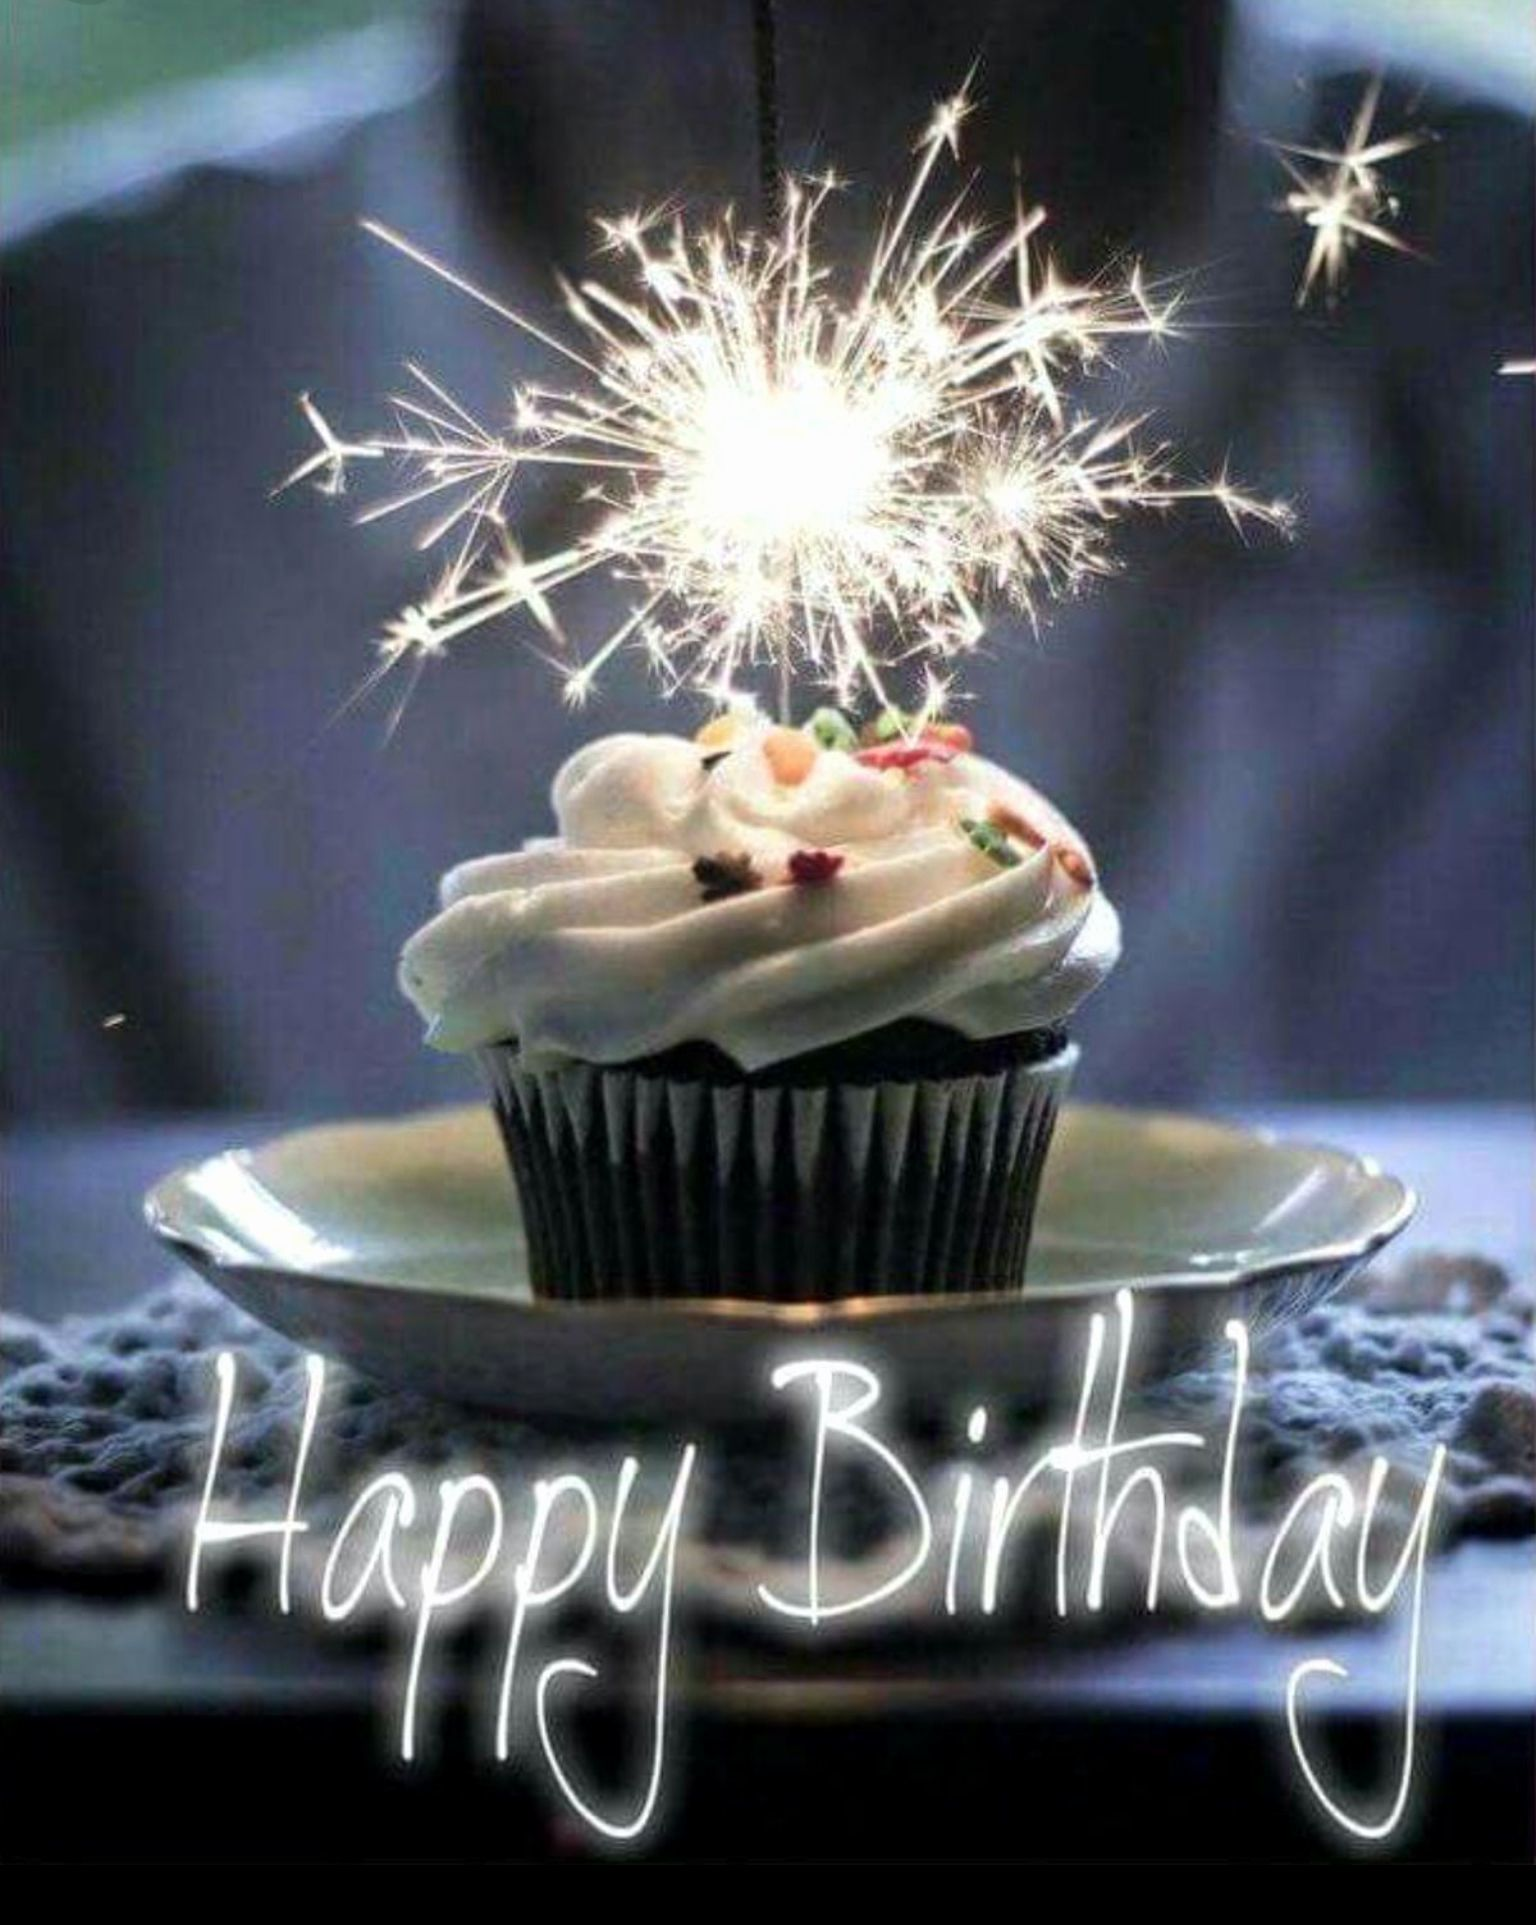 Pin By Dawn Schweder On Inspiration Happy Birthday Cupcakes